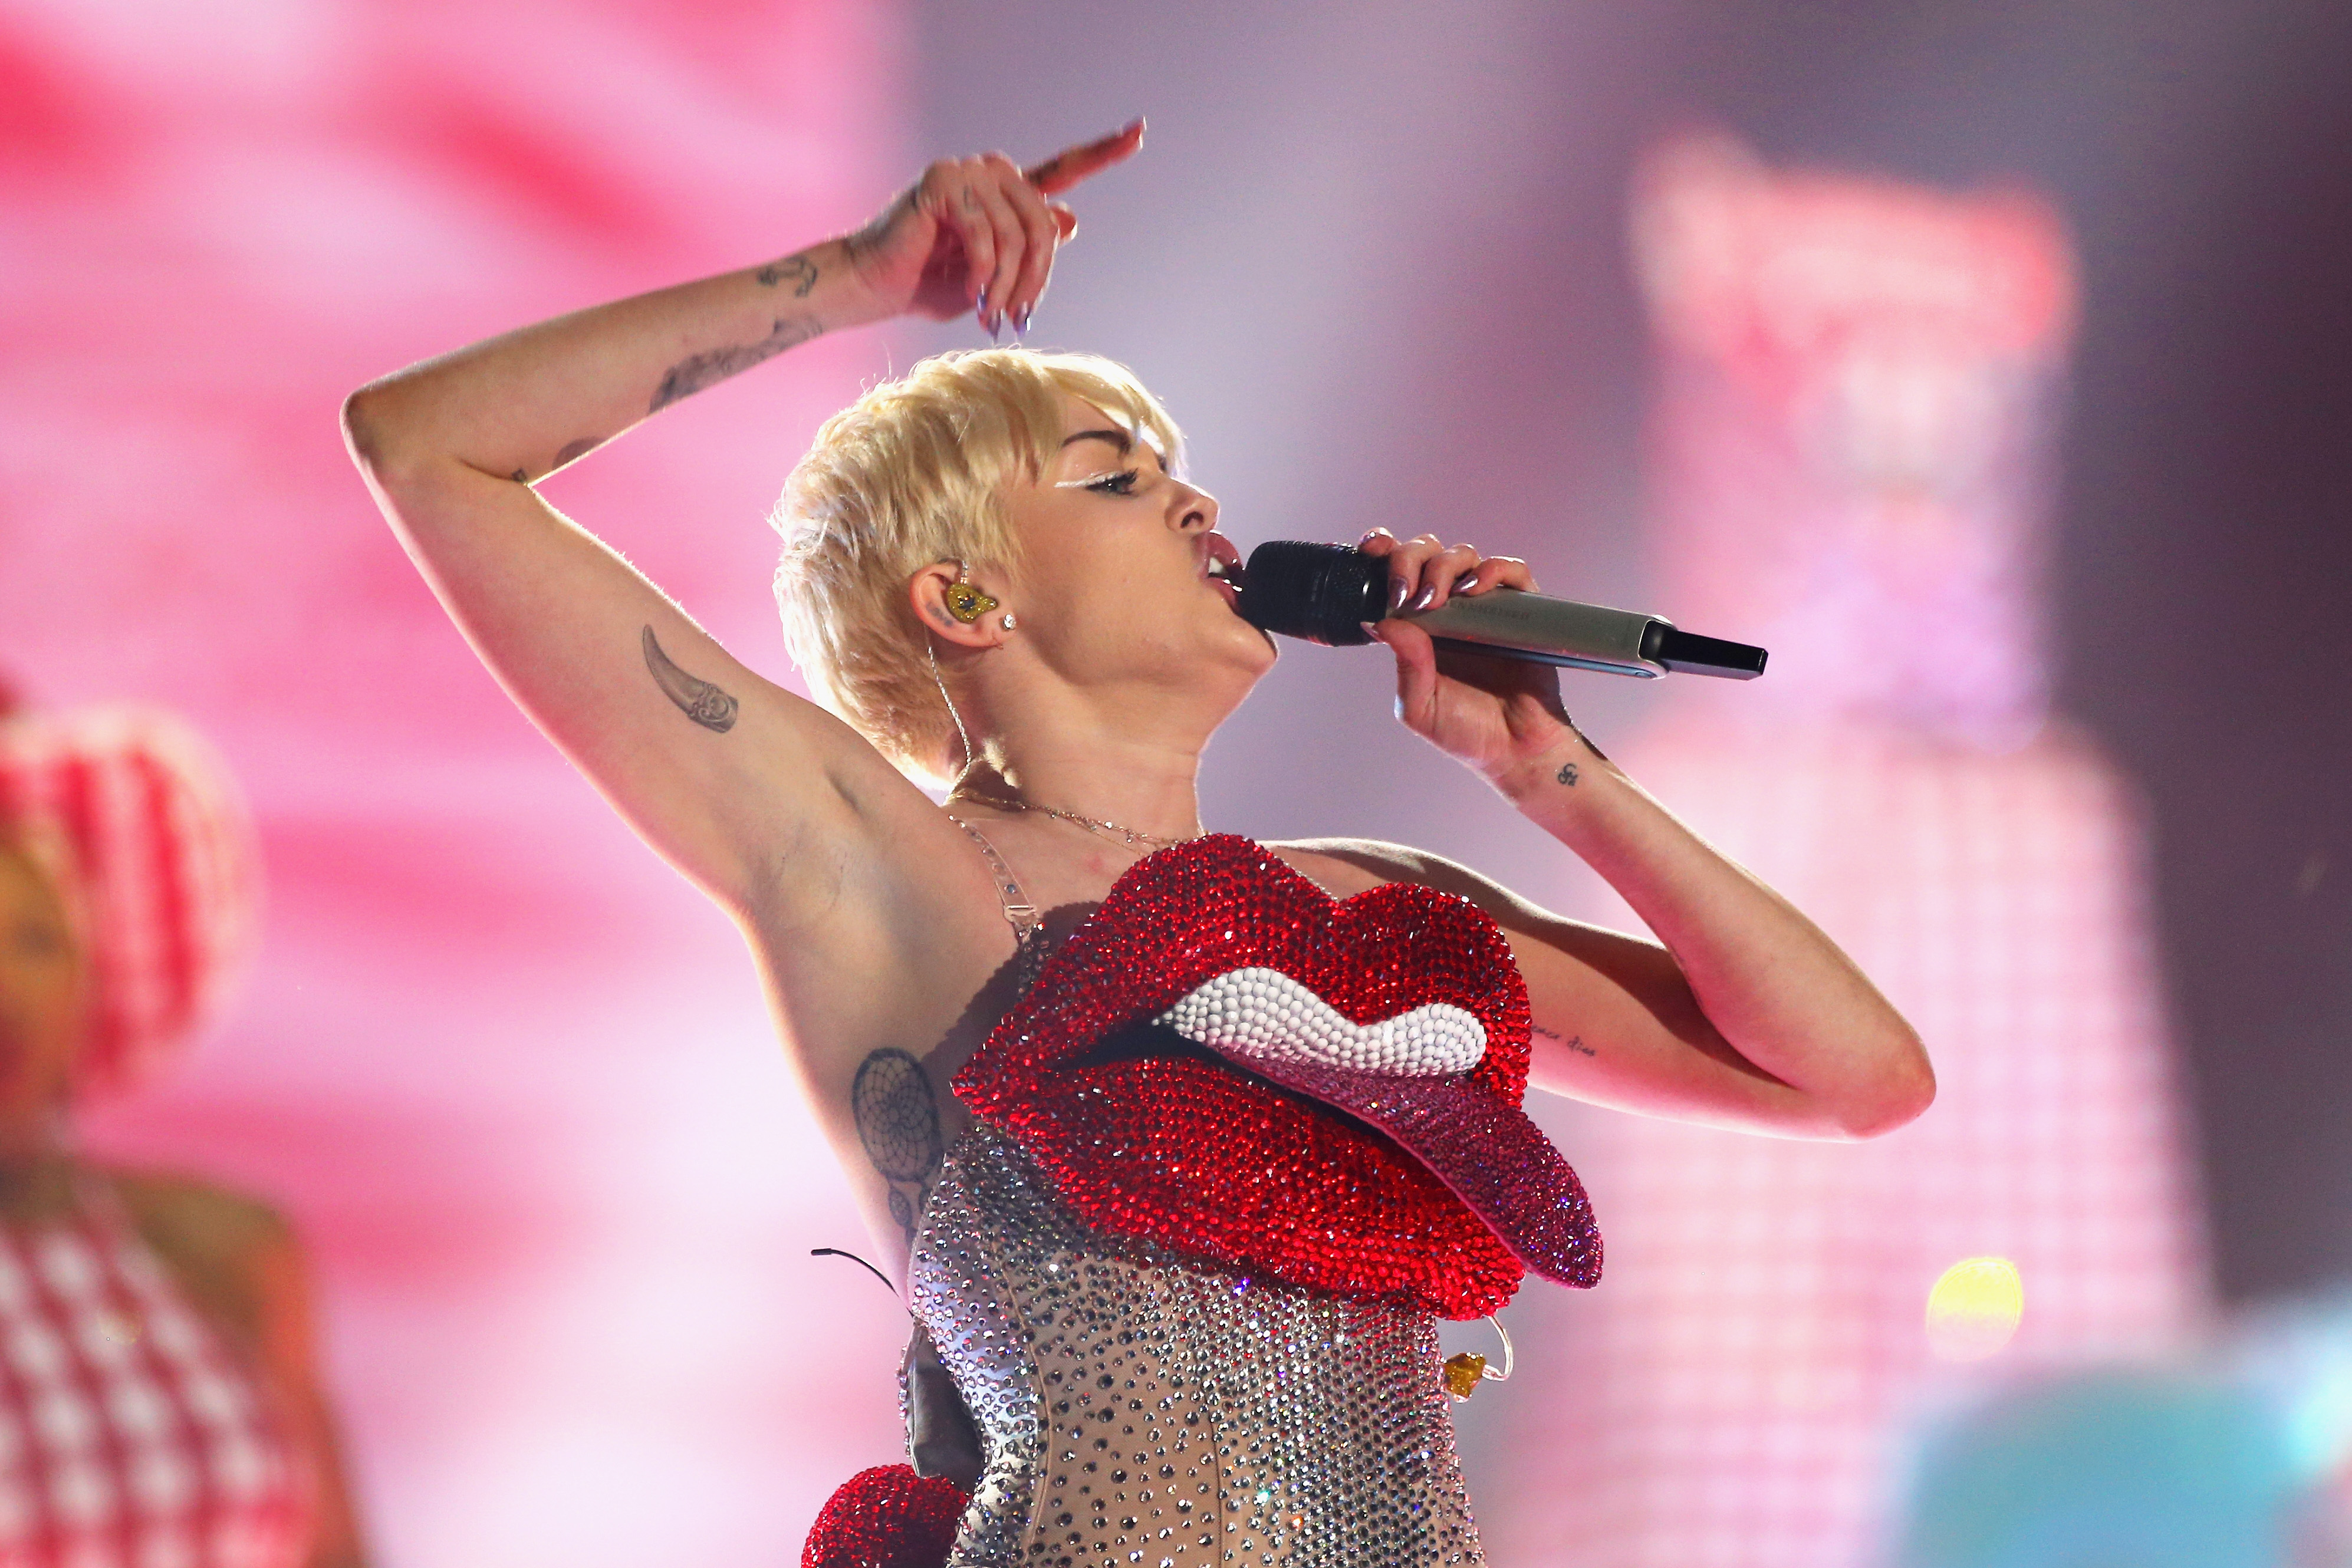 LONDON, ENGLAND - MAY 06:  Miley Cyrus performs live on stage at 02 Arena on May 6, 2014 in London, England.  (Photo by Simon